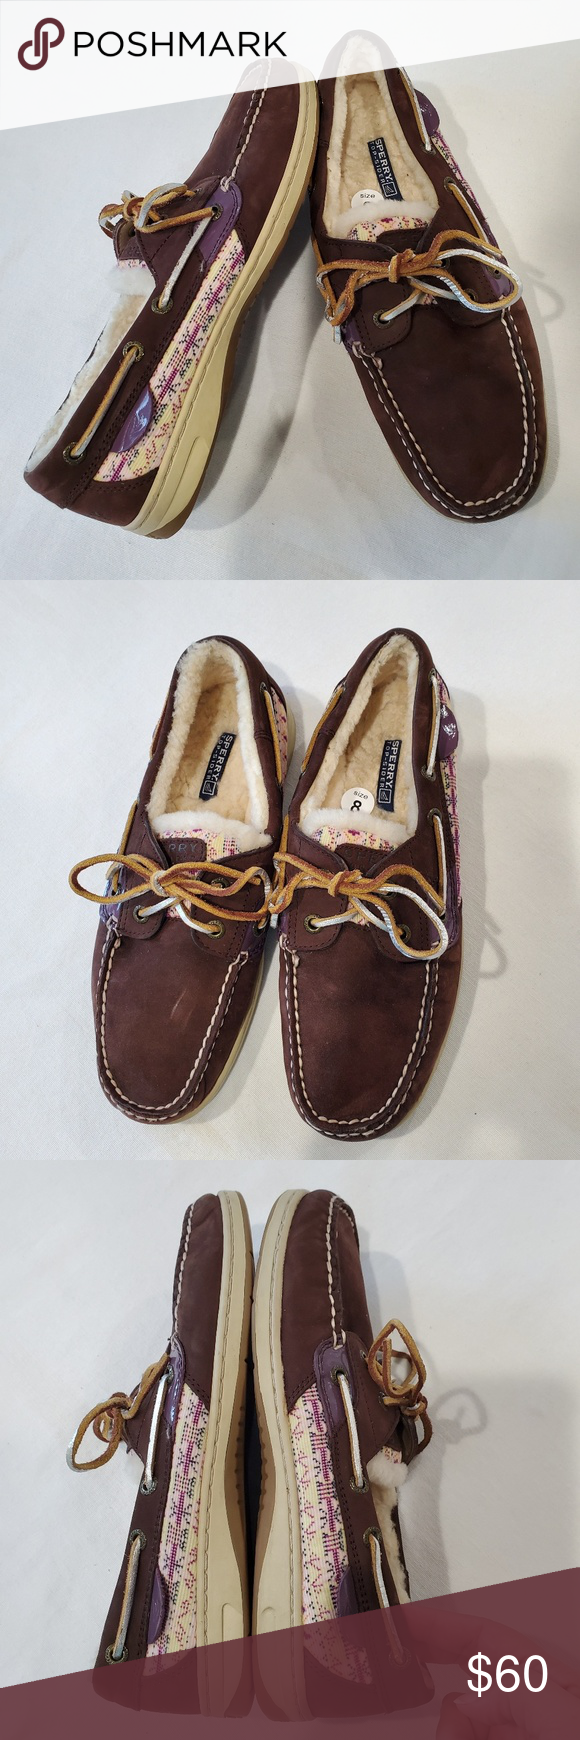 NEW SPERRY TOP-SIDER Bluefish fur lined